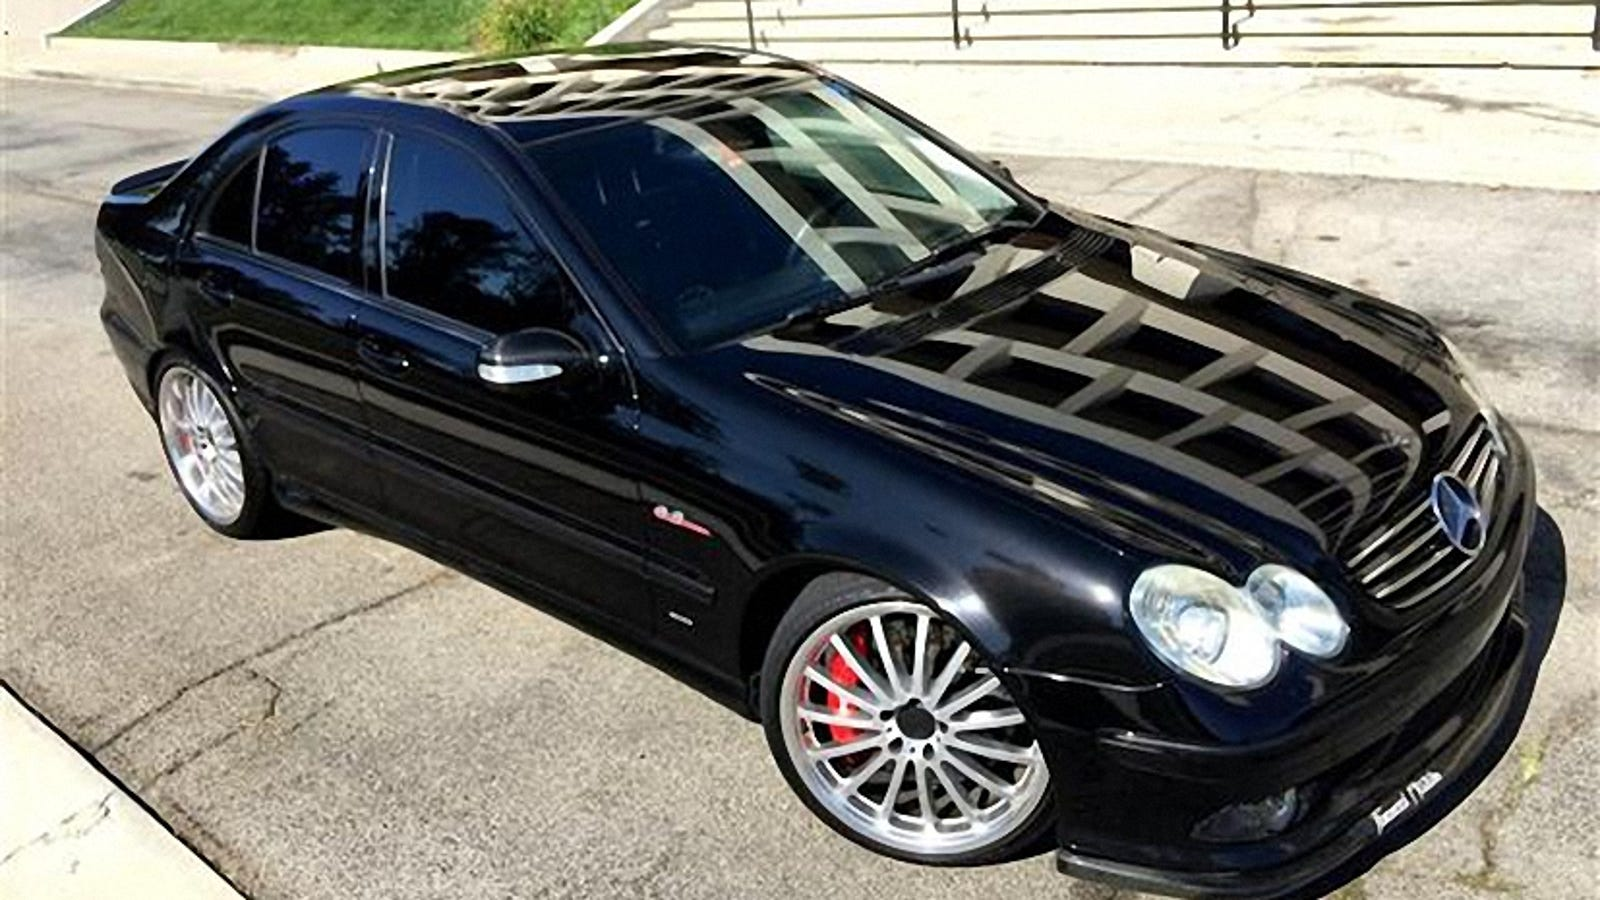 For $13,995, Would This 2005 AMG C55 Brabus Bust The Bank?